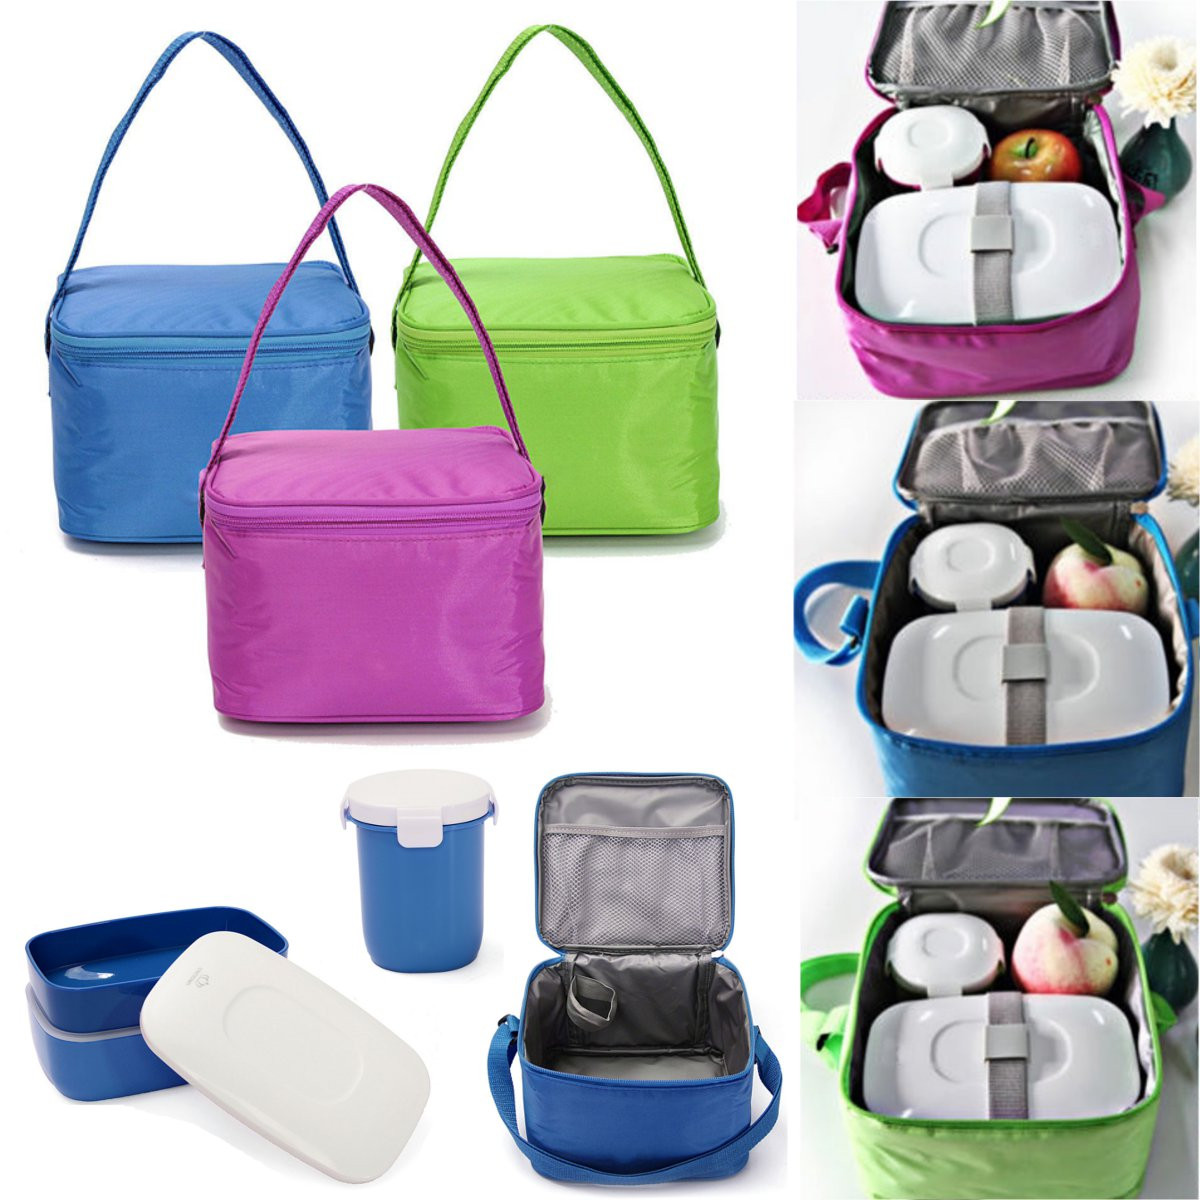 Lunch Box Bento Water Mug Set Camping Picnic Food Container Insulated Tote Carry Bag